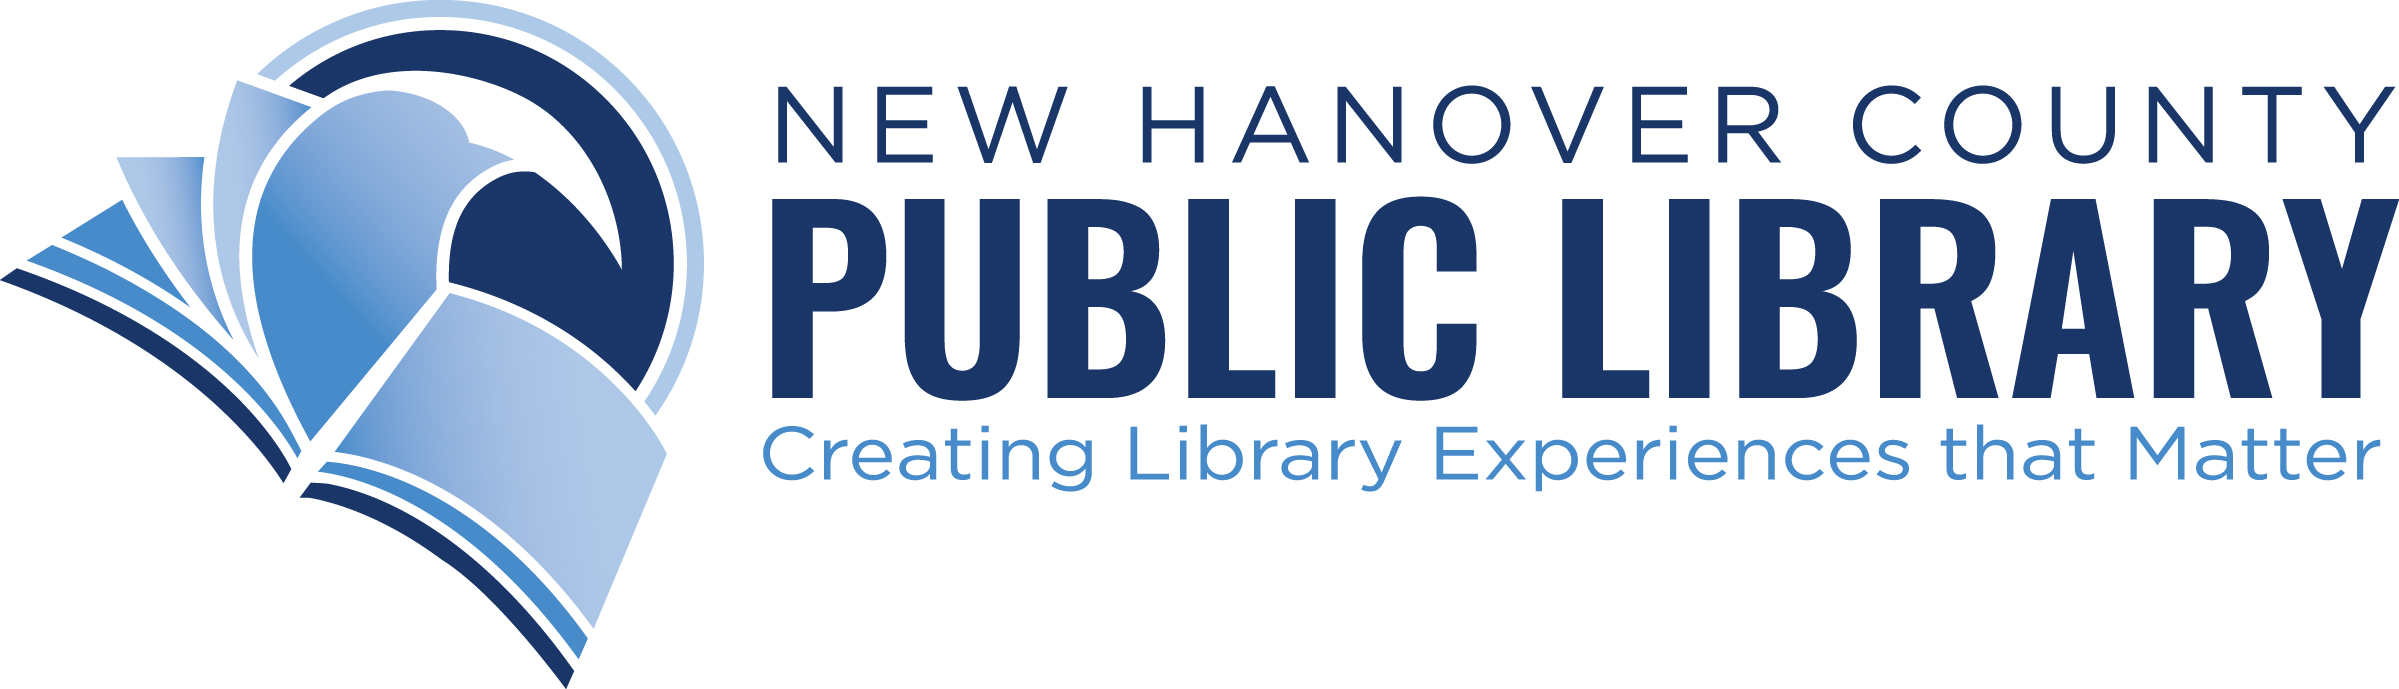 New Hanover County Public Library - Cancellation